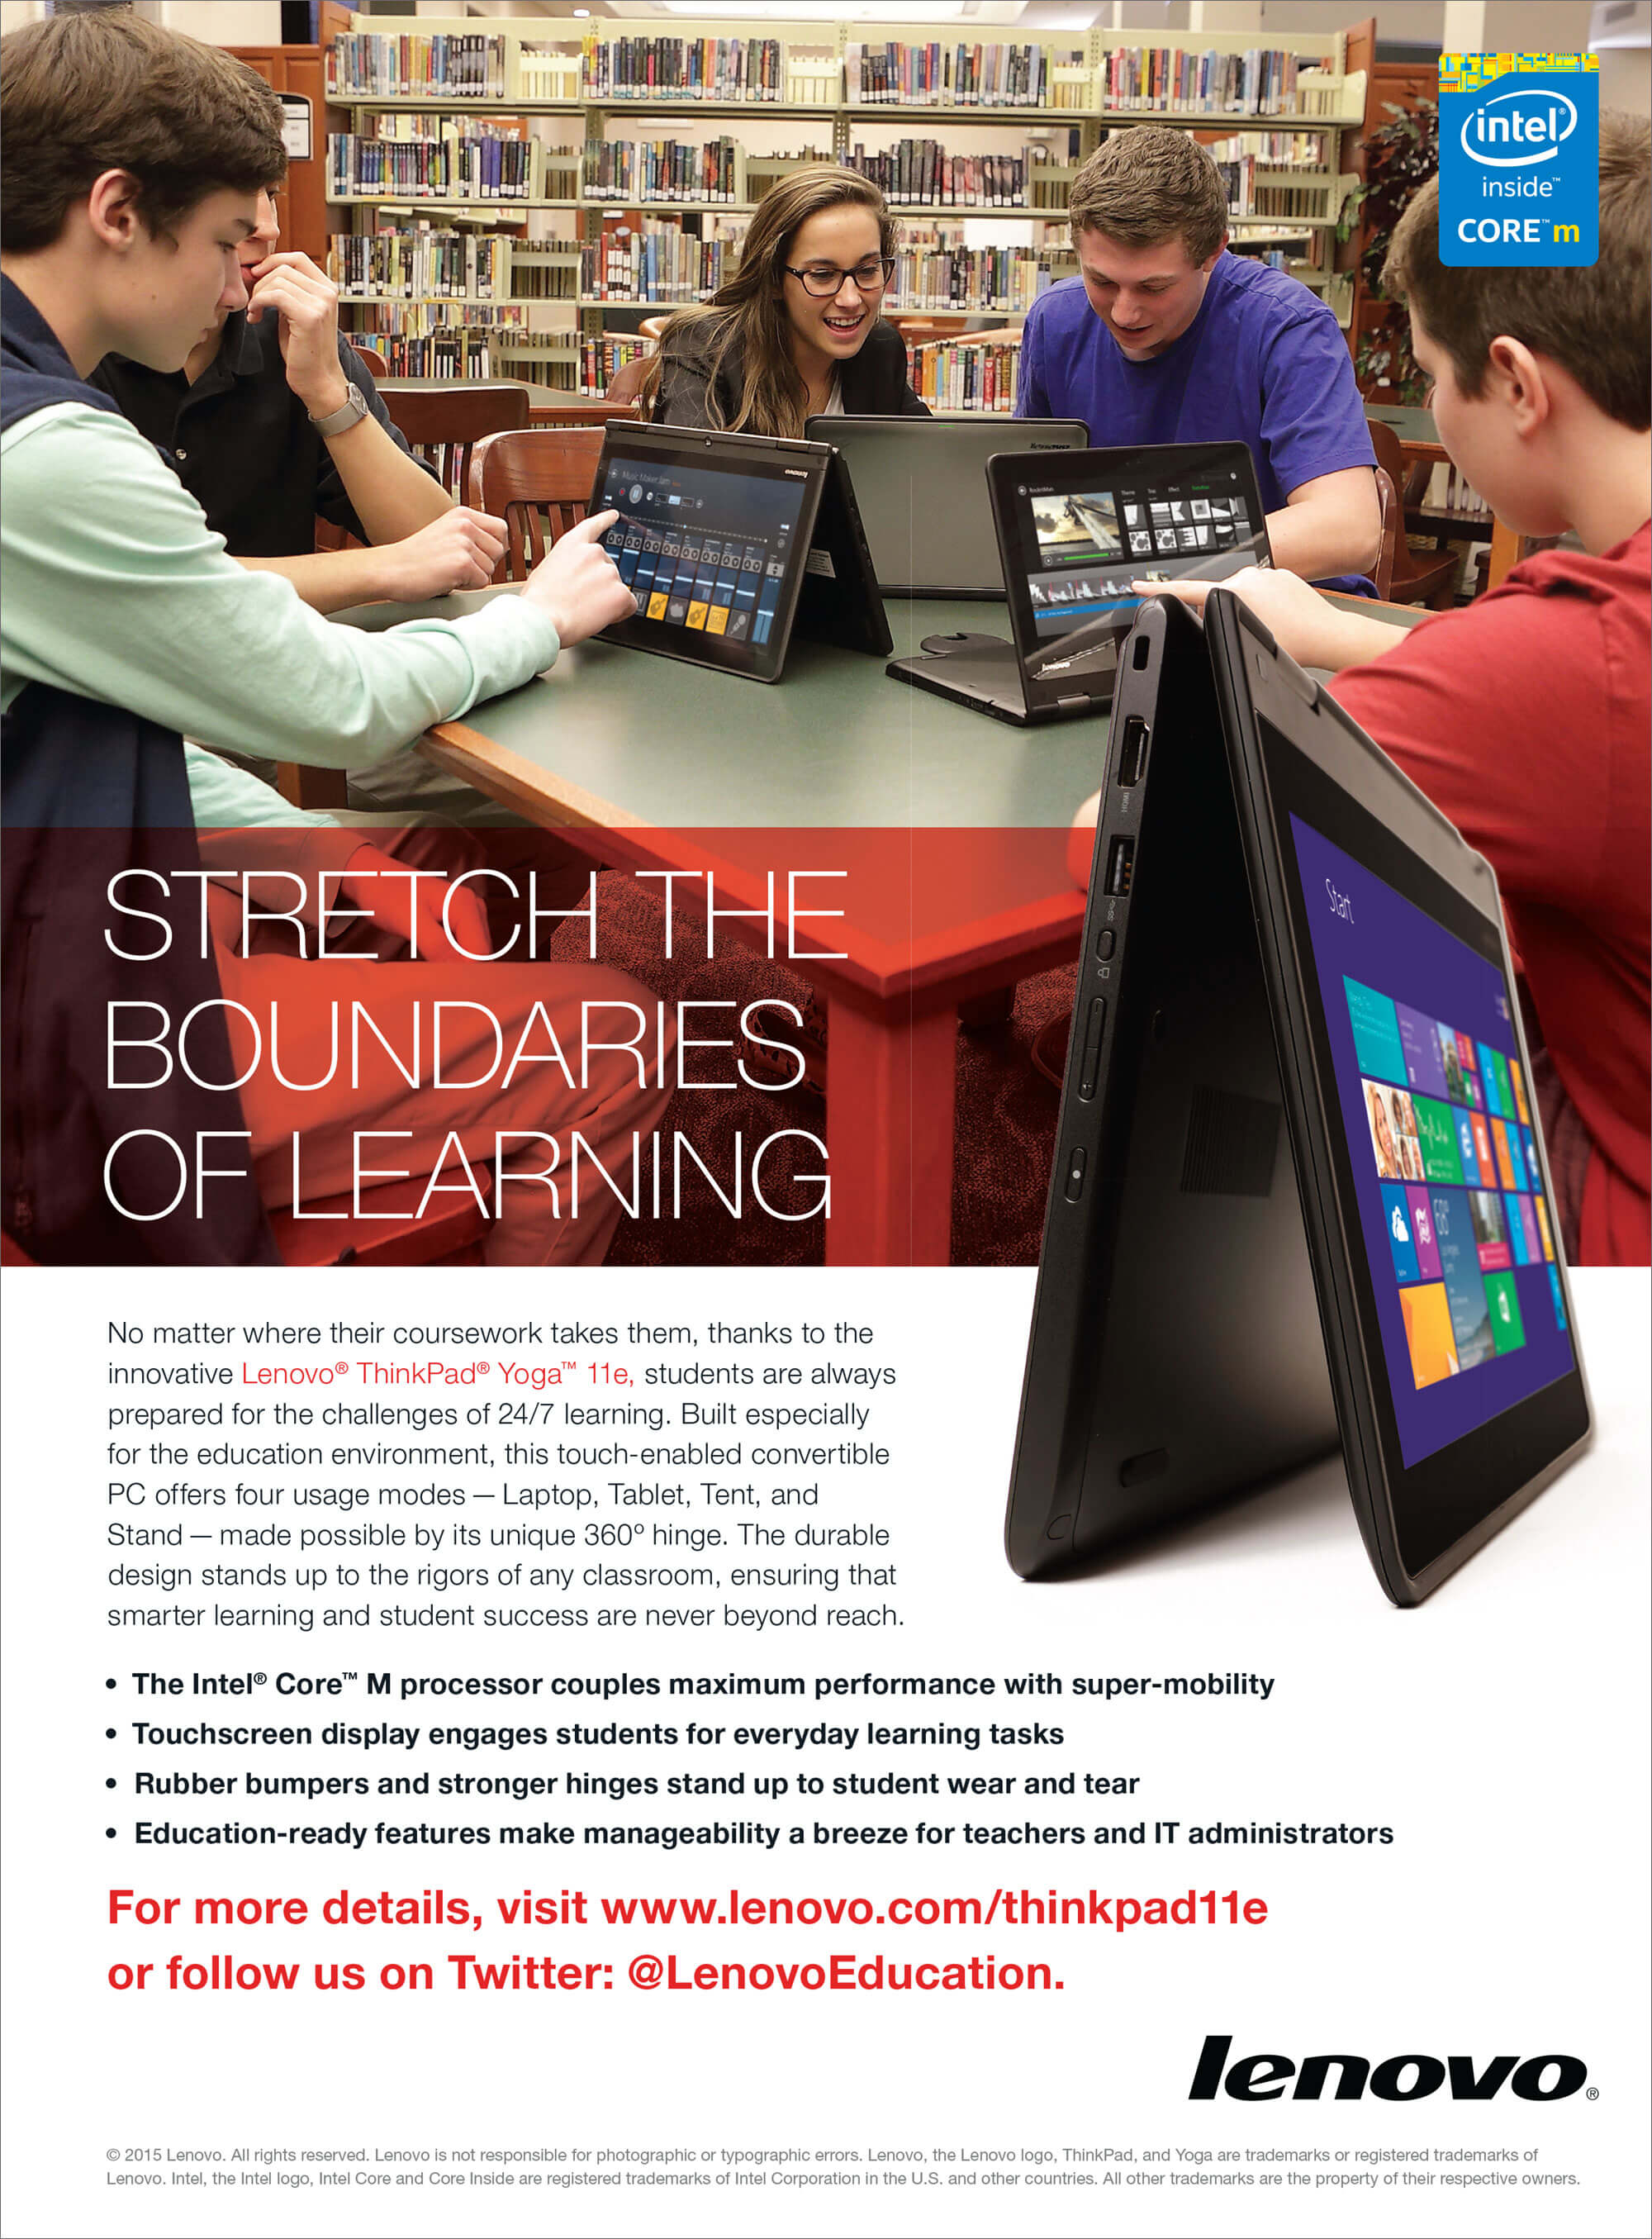 Full-page ad for the ThinkPad 11e, targeted at the K–12 education market